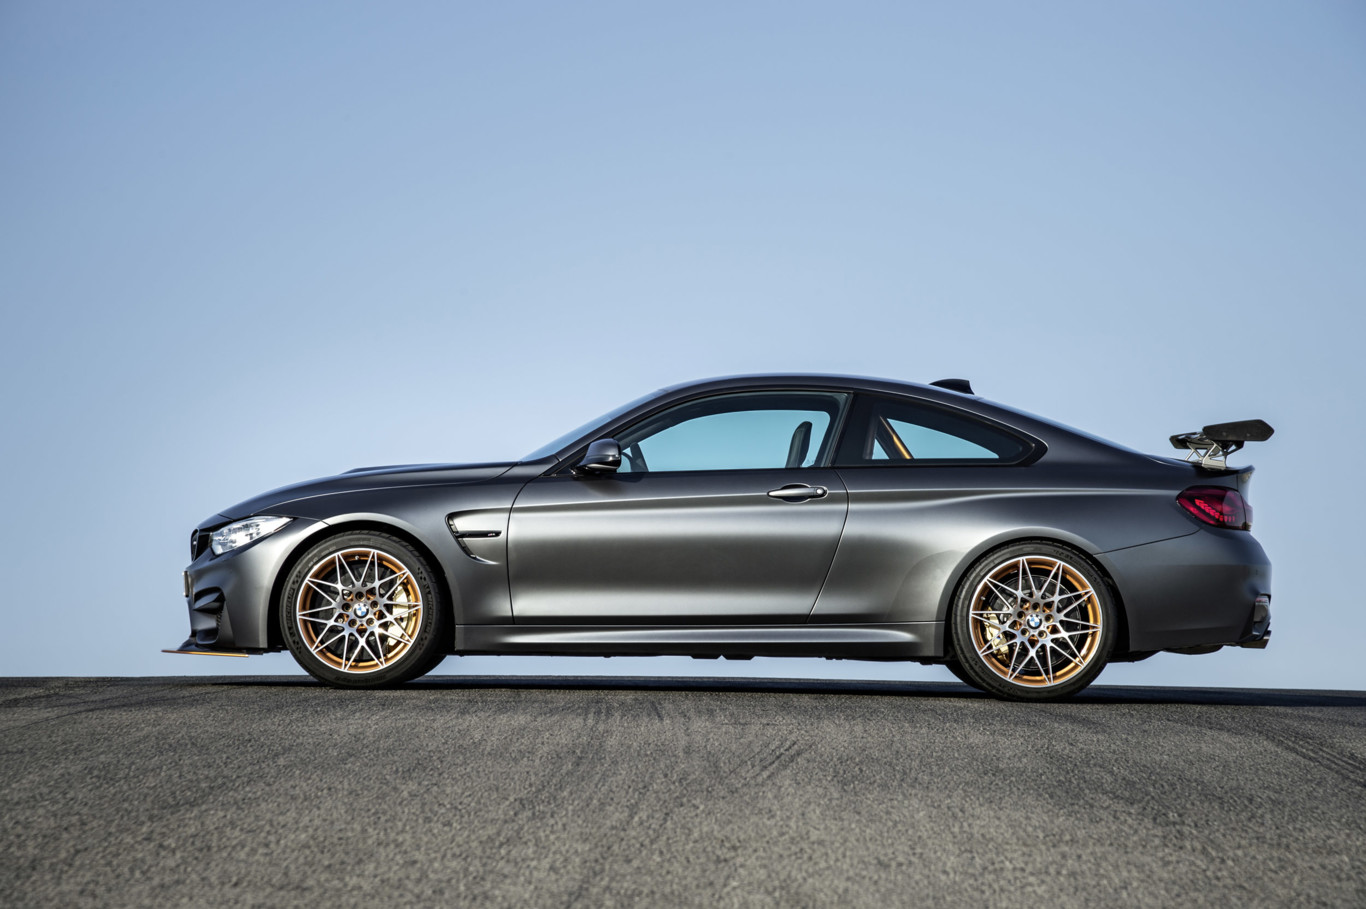 2020 BMW M4 Gts Research New